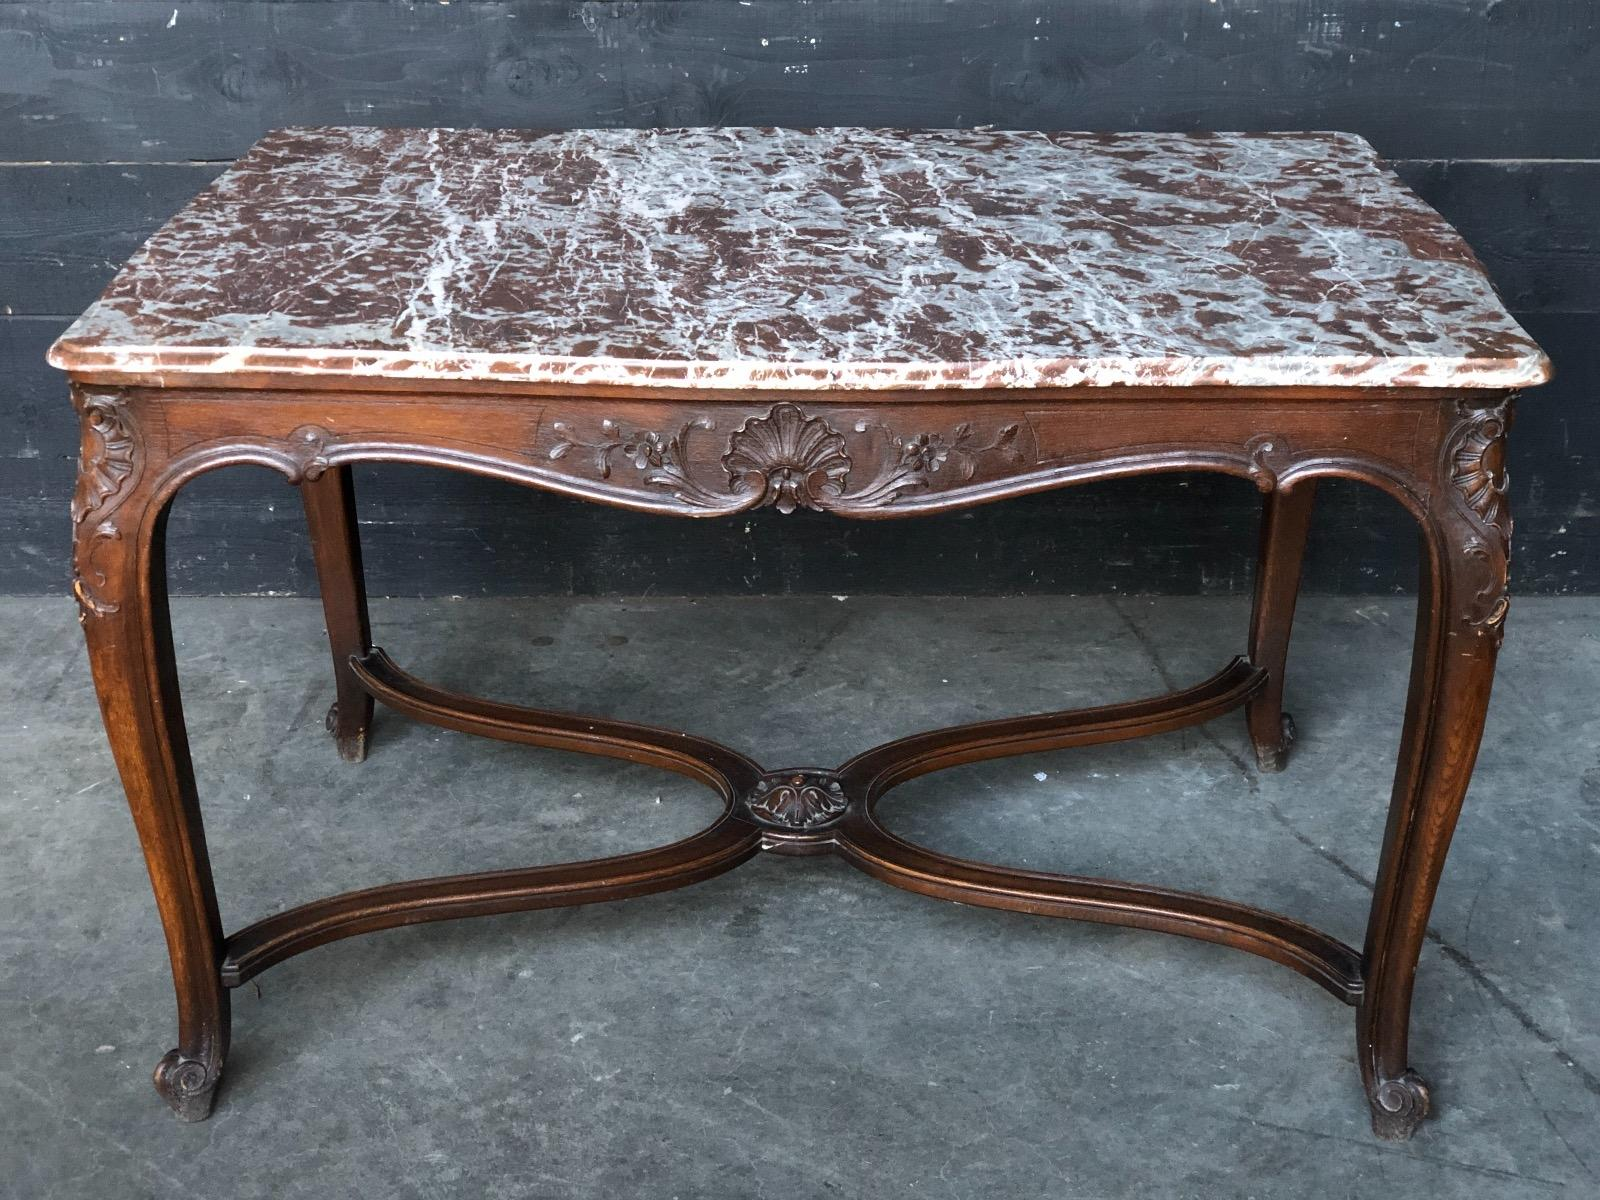 Antique Marble Top Center Table Antiques Furnitures Recent Added Items European Antiques Decorative